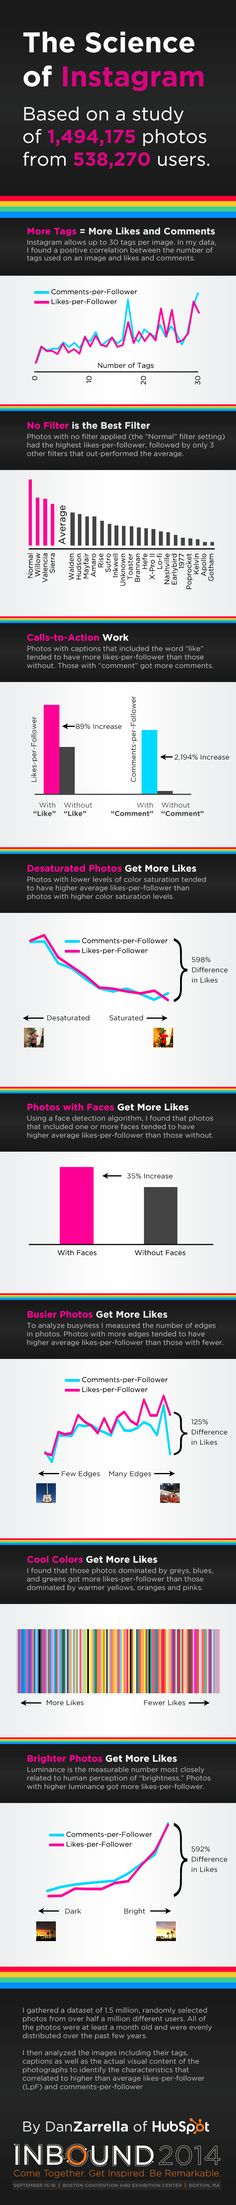 Want to know how to get more Instagram likes and comments? Here are the results of a scientific study of almost 1.5 million Instagram photos from over half a million users. Dan Zarella, the social media scientist, compiled the results on this easy-to-follow #infographic he calls The Science of #Instagram. Some of the findings are must-follow for any company. Others you'll need to look at in regards to your company's branding. Check it out! #InstagramTips #SocialMediaTips